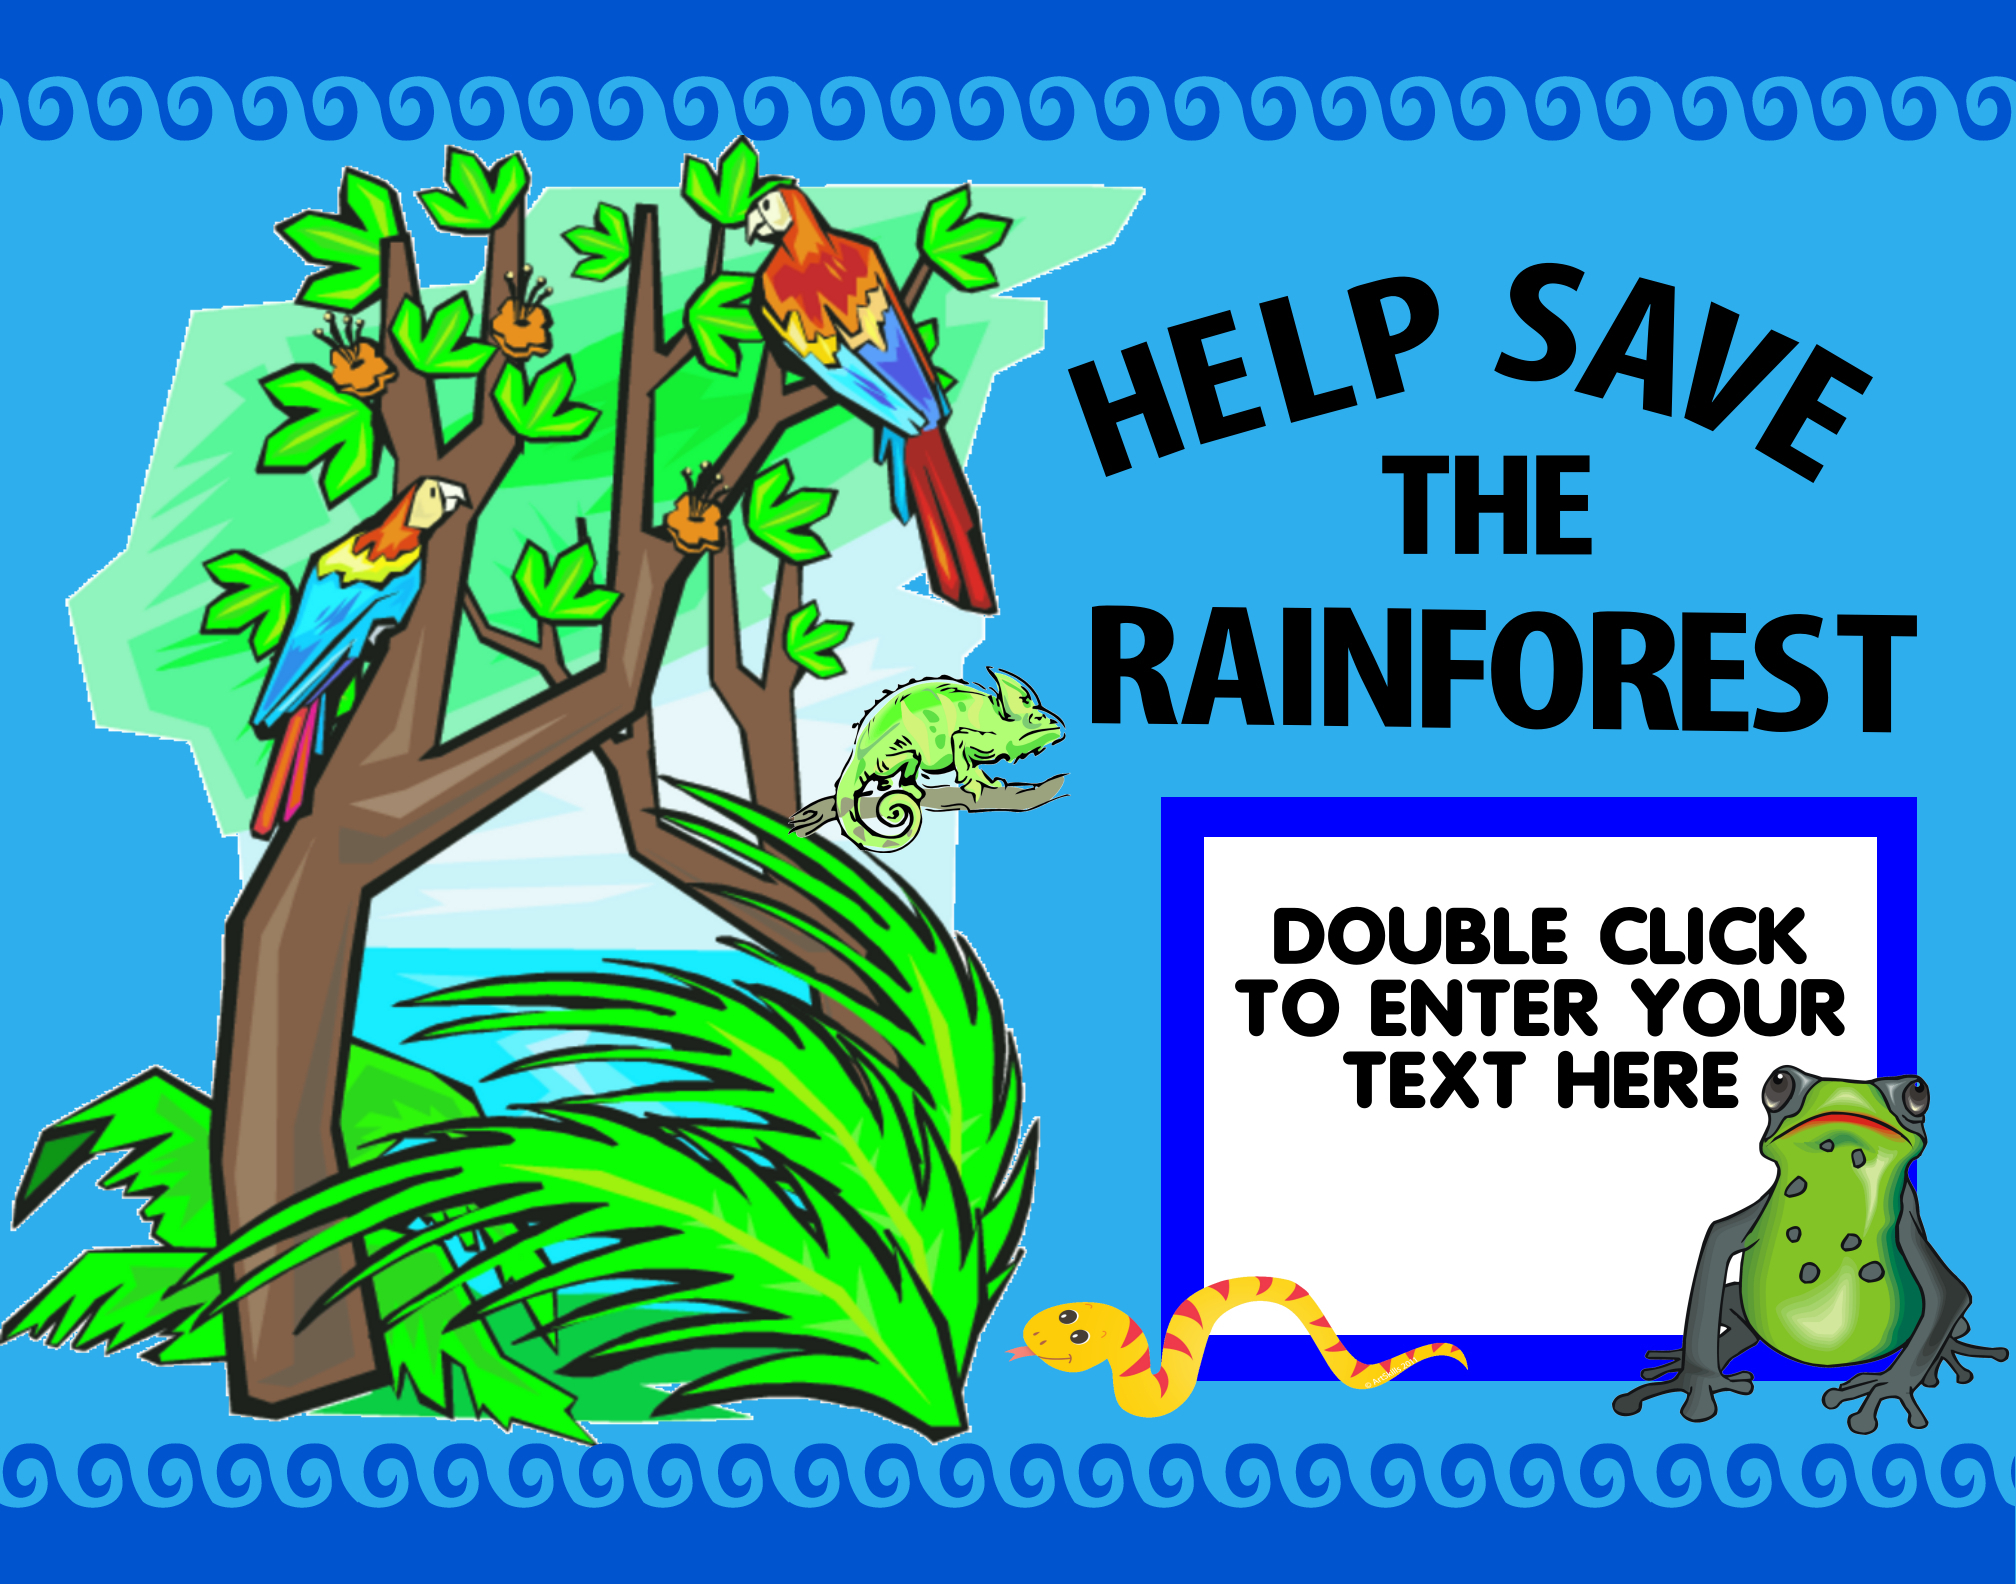 Rainforest Destruction: We Need to Save the Rain Forest